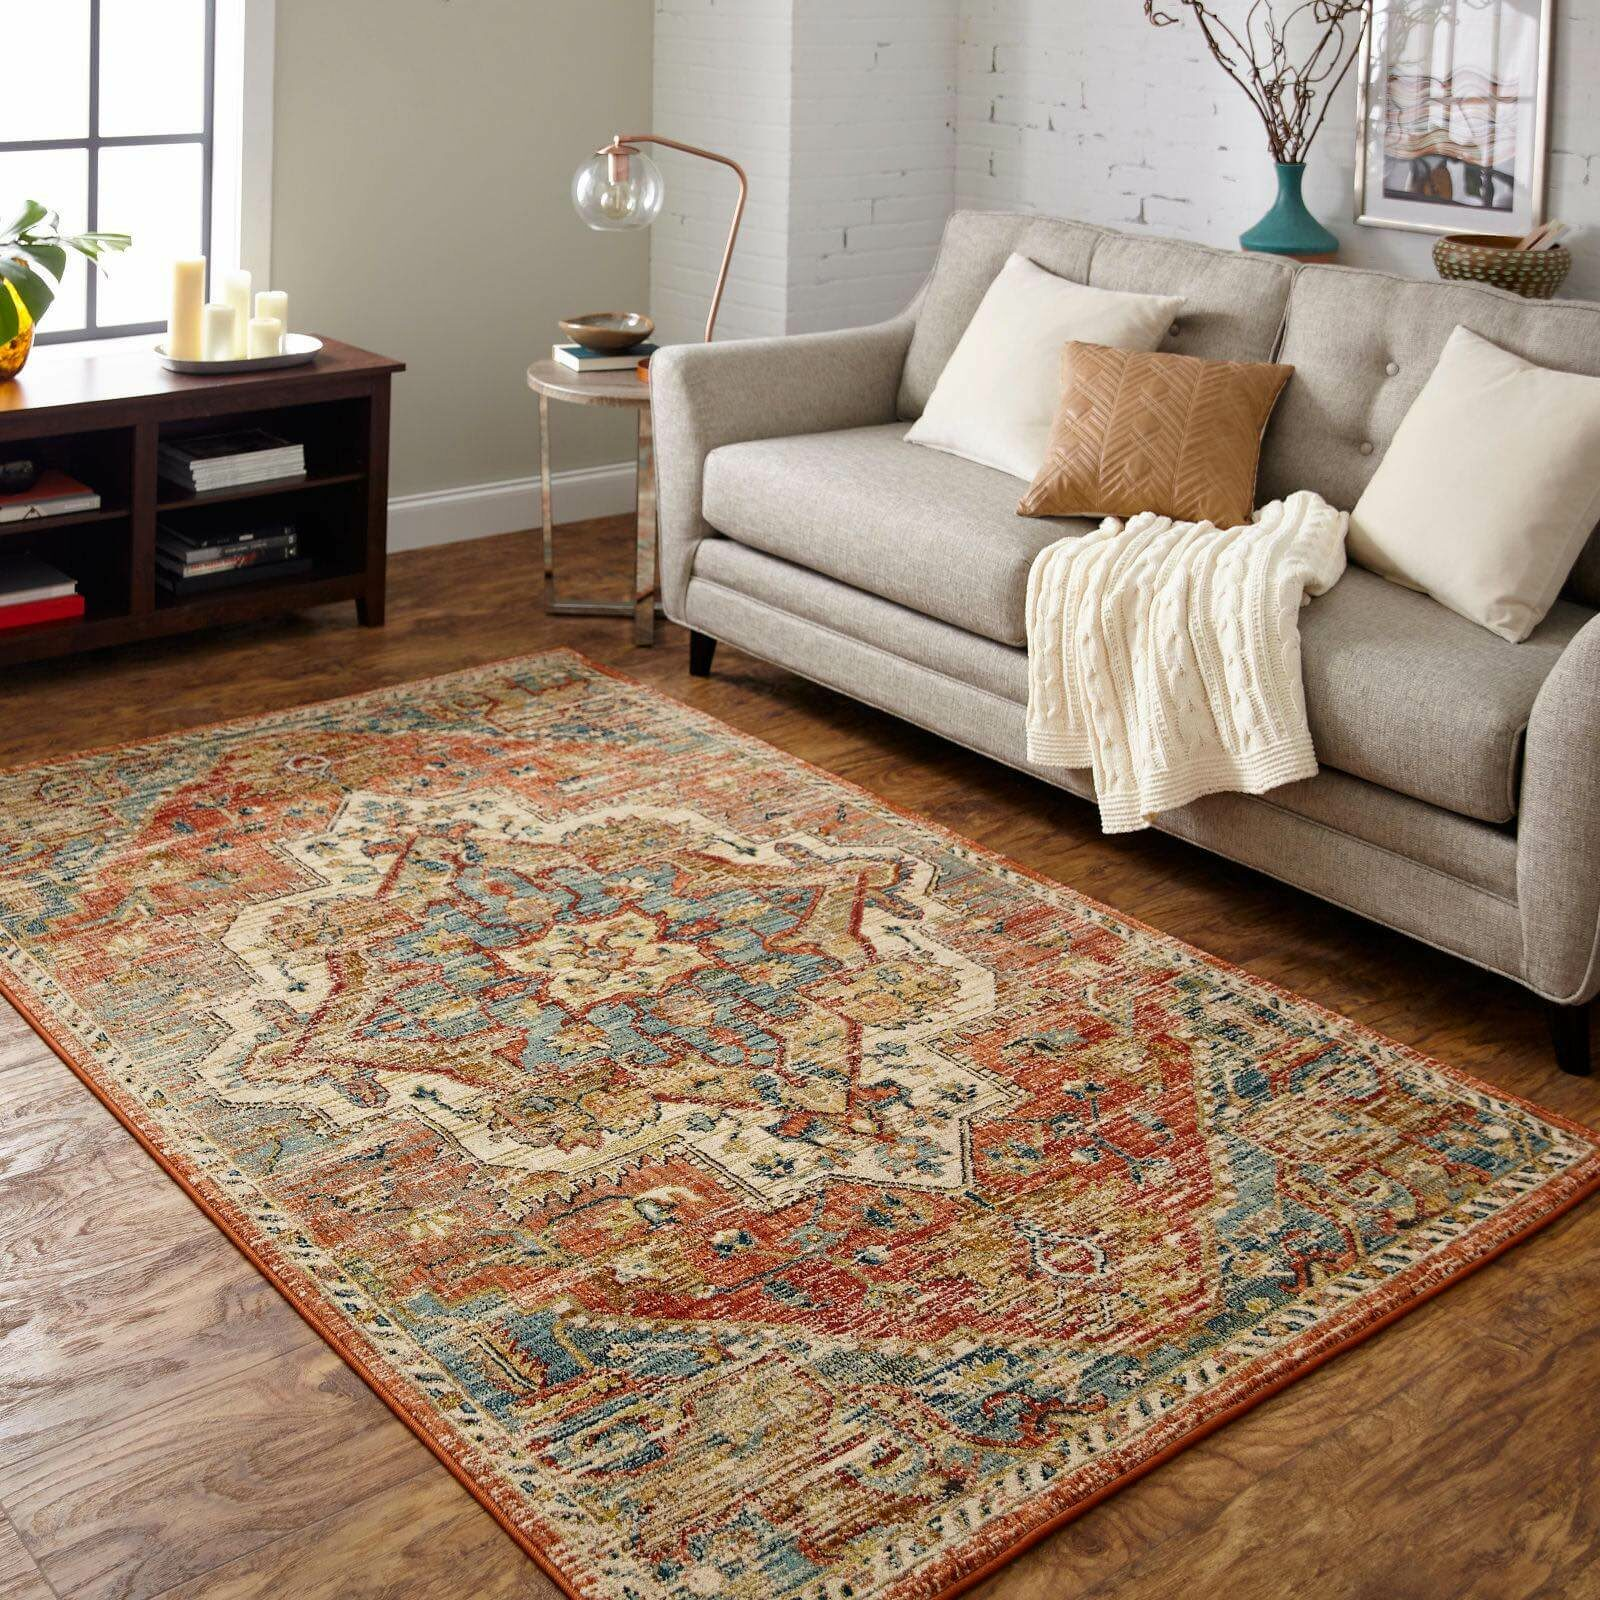 Select rug for living area | The Flooring Place